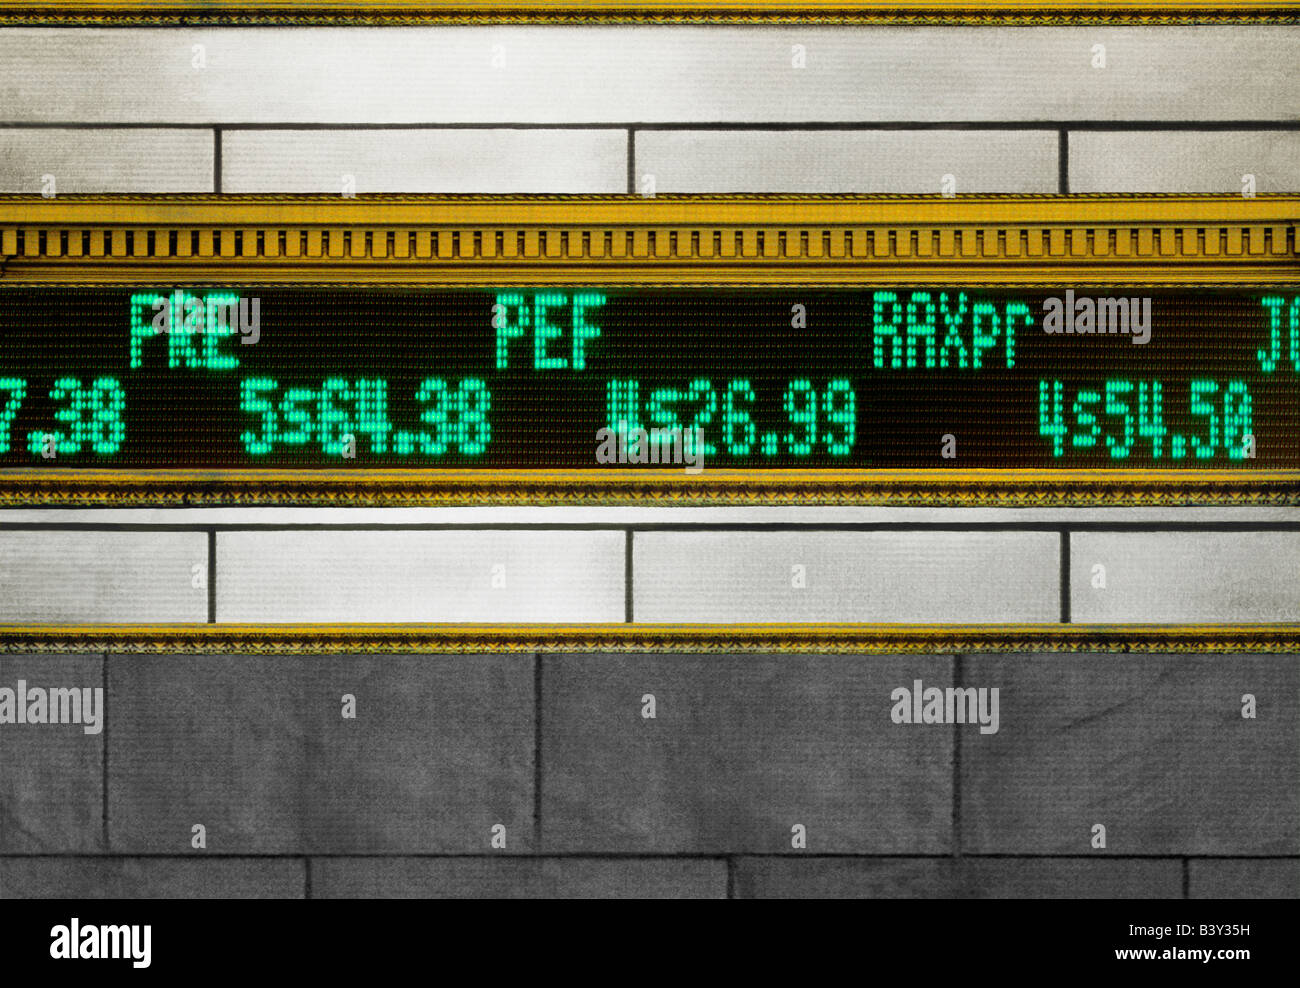 USA New York Wall Street Stock Market Data Stock Ticker ...